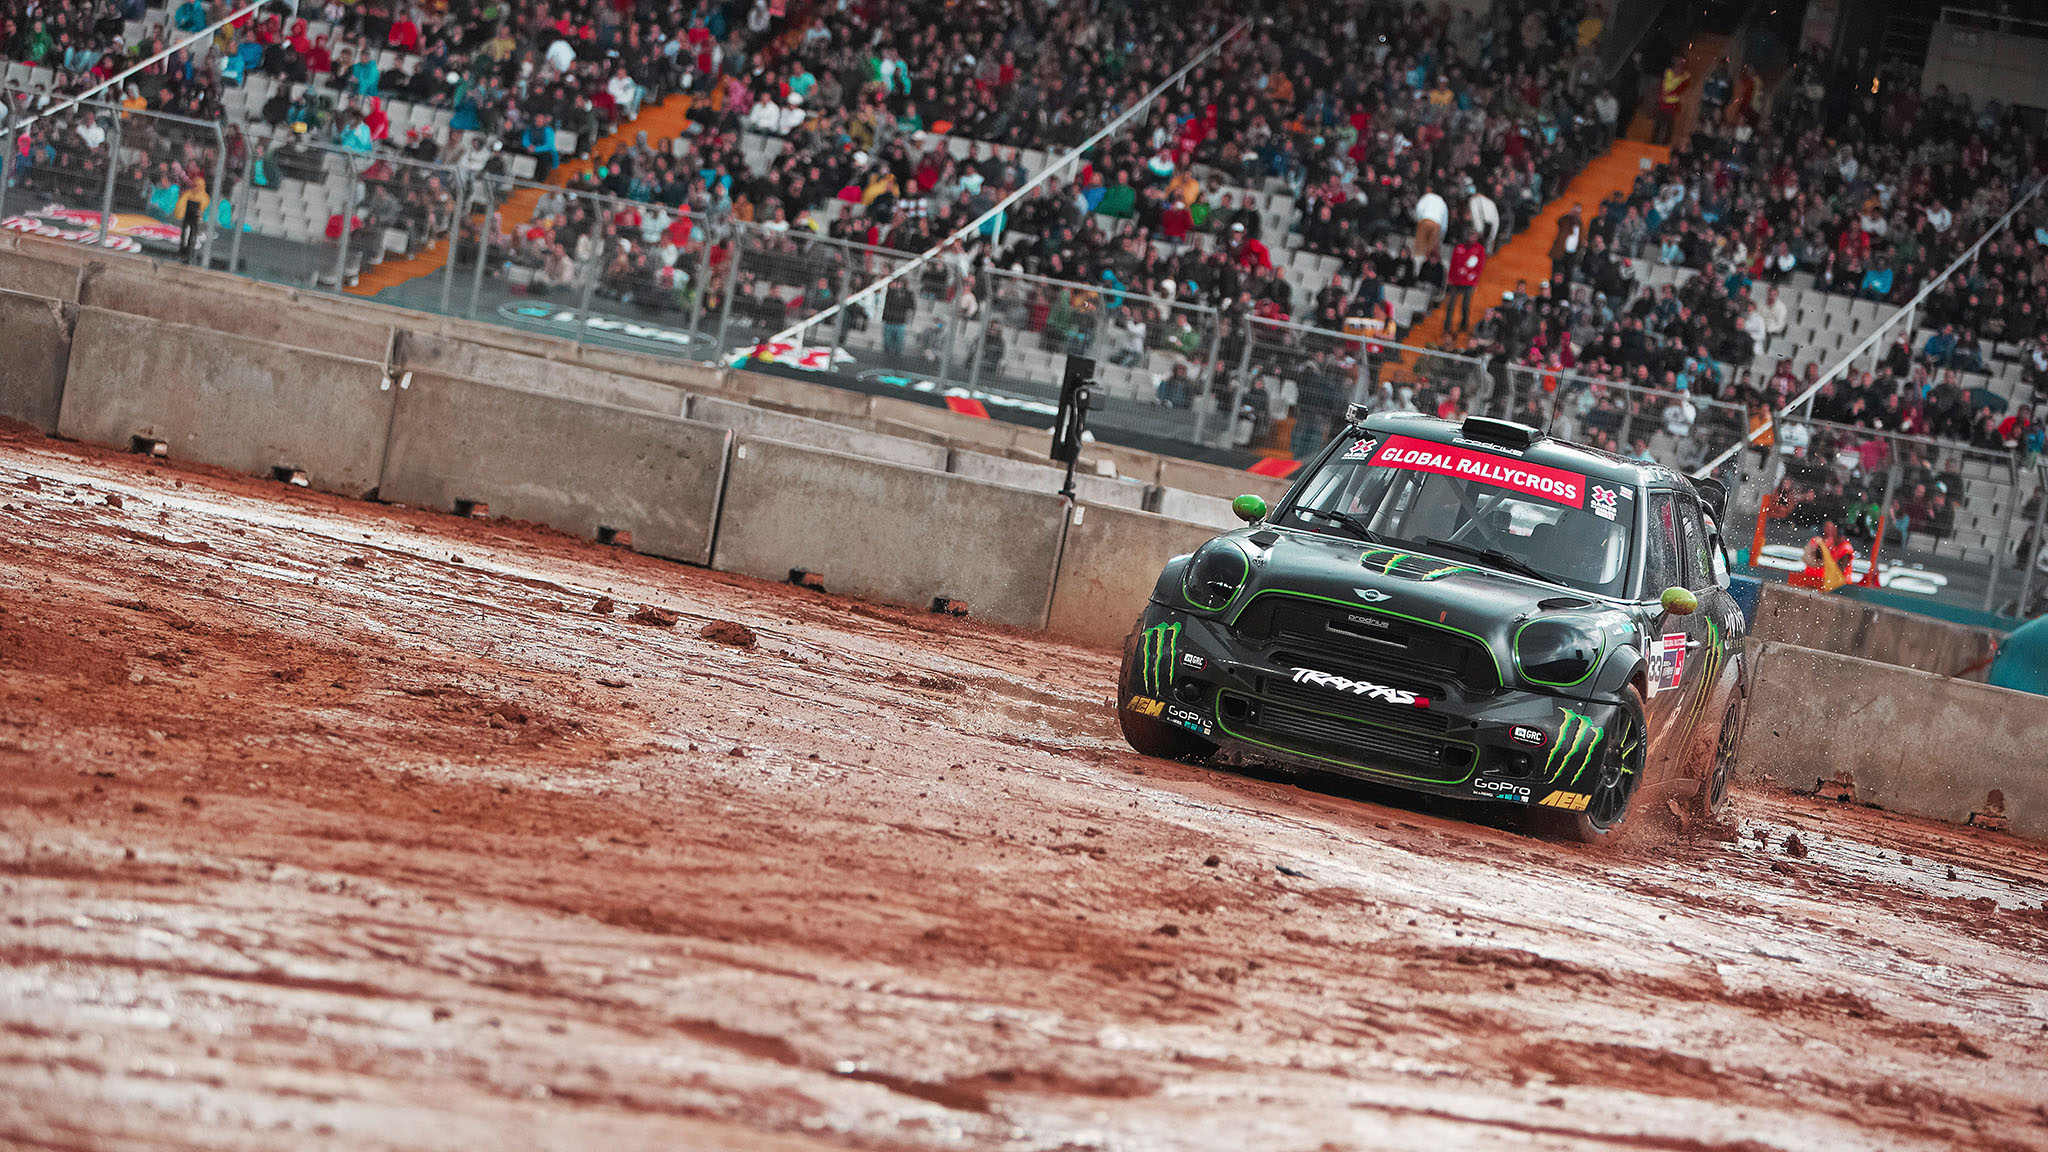 The X Games Barcelona RallyCross race had to be canceled due to rain. The make-up race will be held Saturday in Munich.